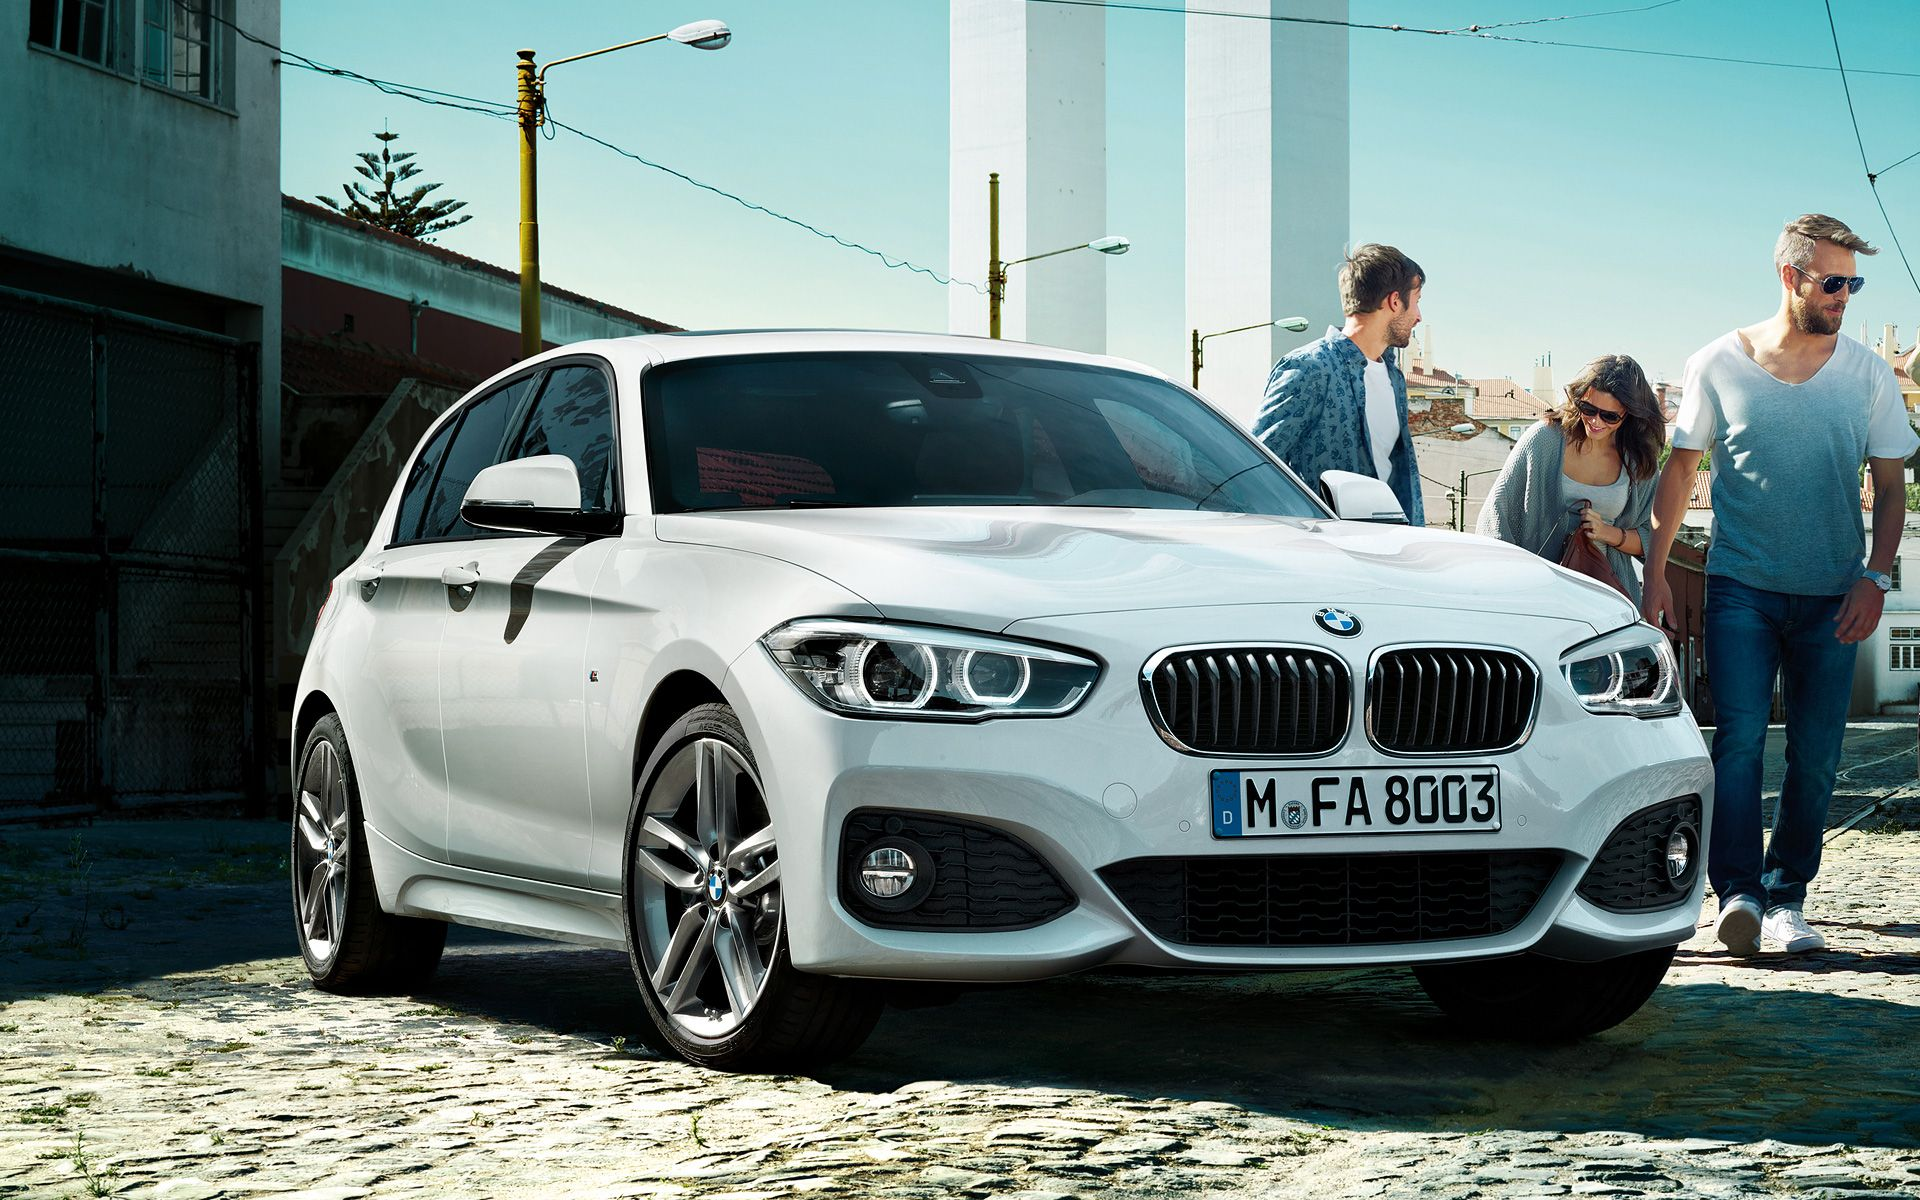 The New Bmw 1 Series Bmw 1 Series Bmw Sports Cars For Sale